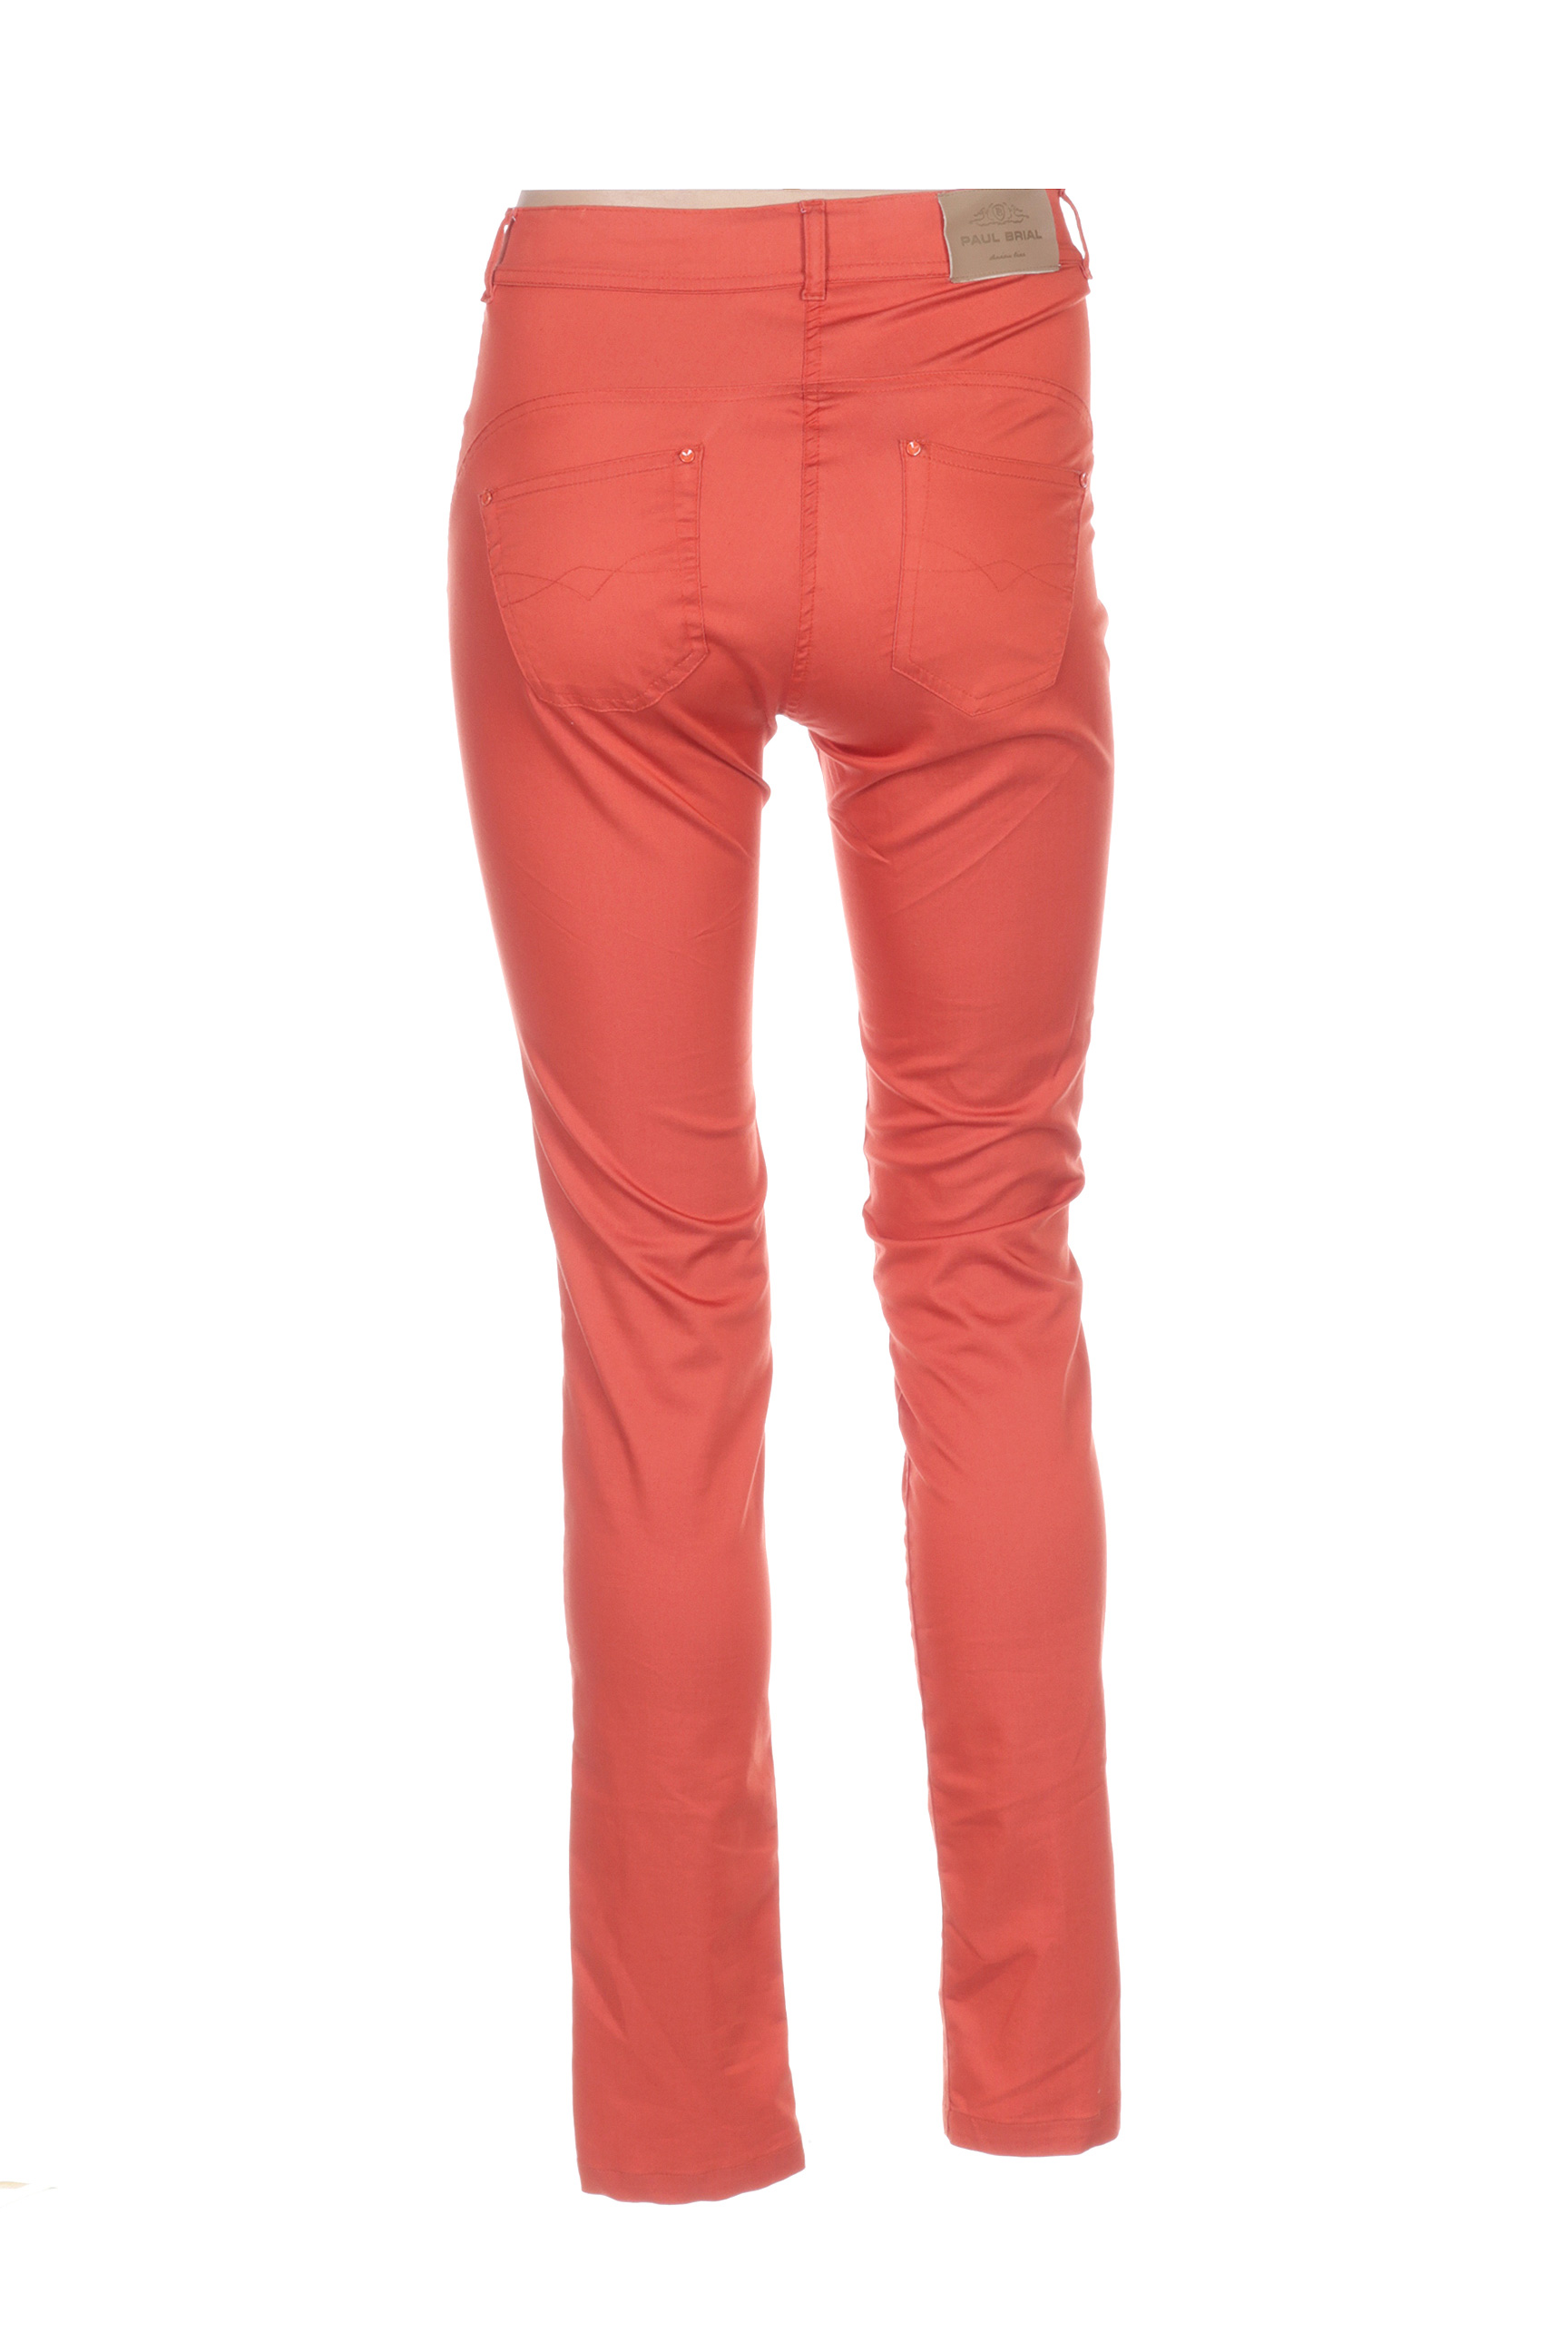 Paul Brial Pantalons Decontractes Femme De Couleur Orange En Soldes Pas Cher 1369224-orange